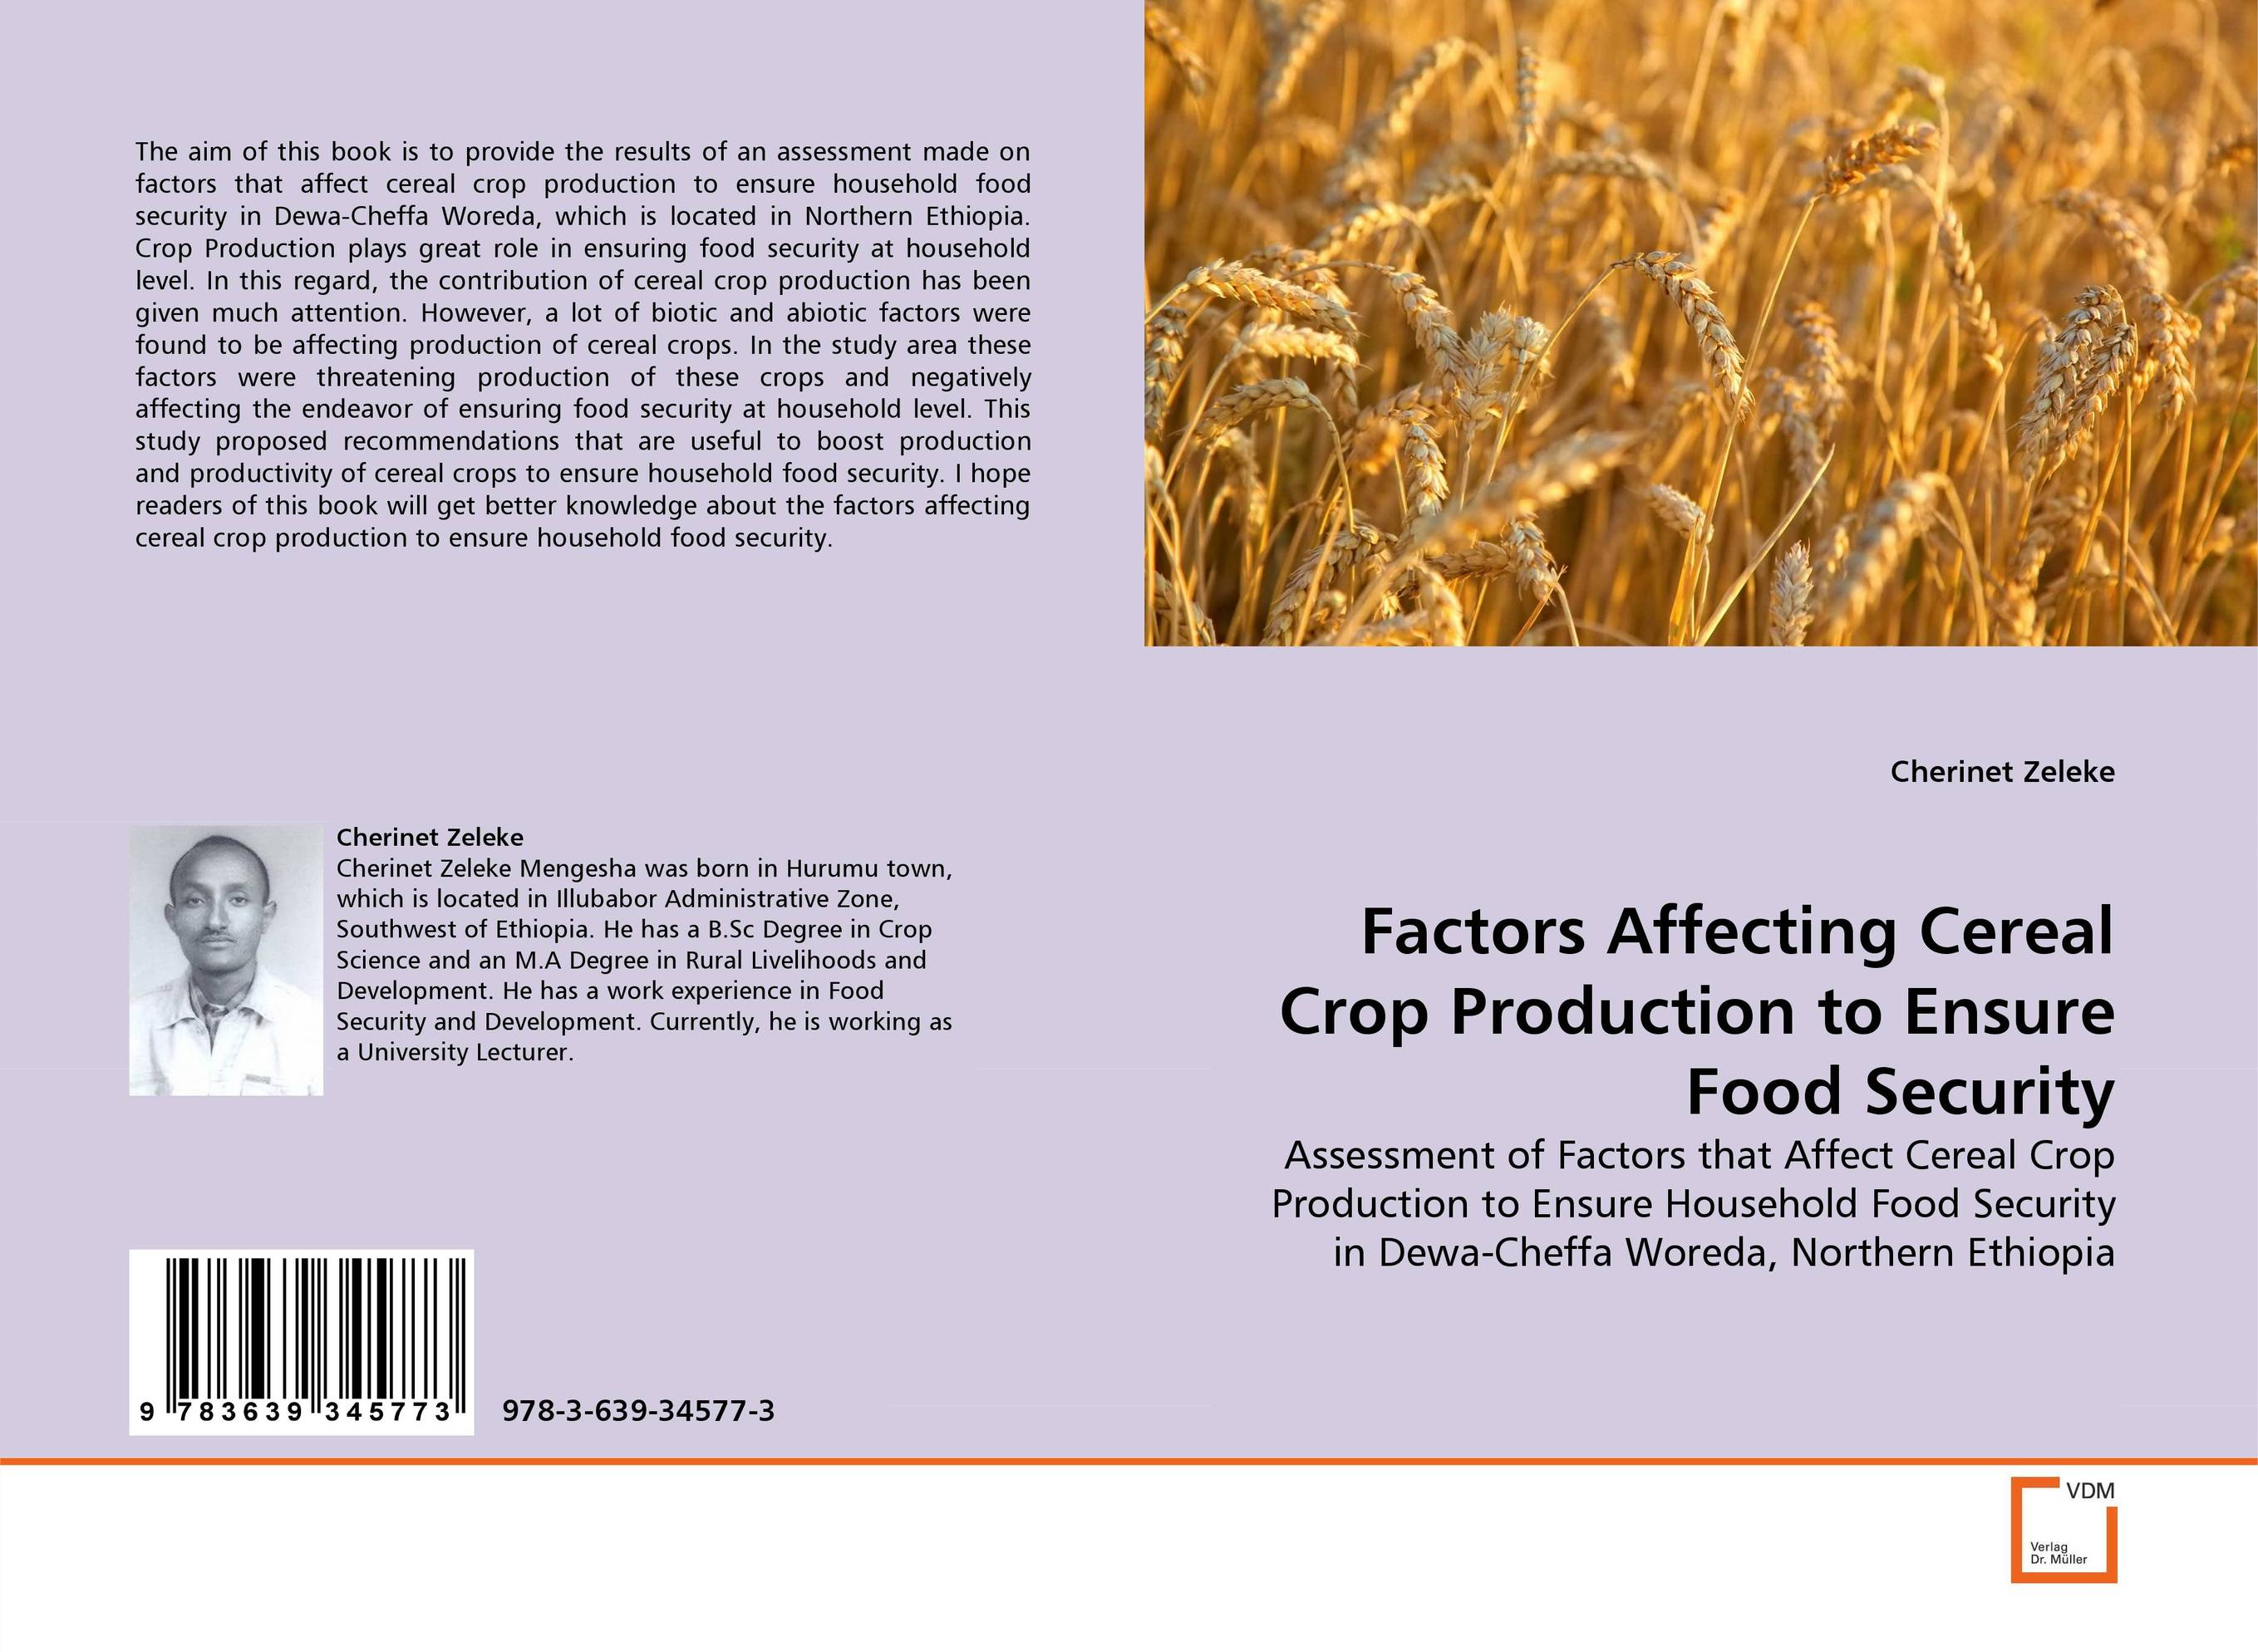 Factors Affecting Cereal Crop Production to Ensure Food Security agatha daniel and charles olungah women s indigenous knowledge in household food security